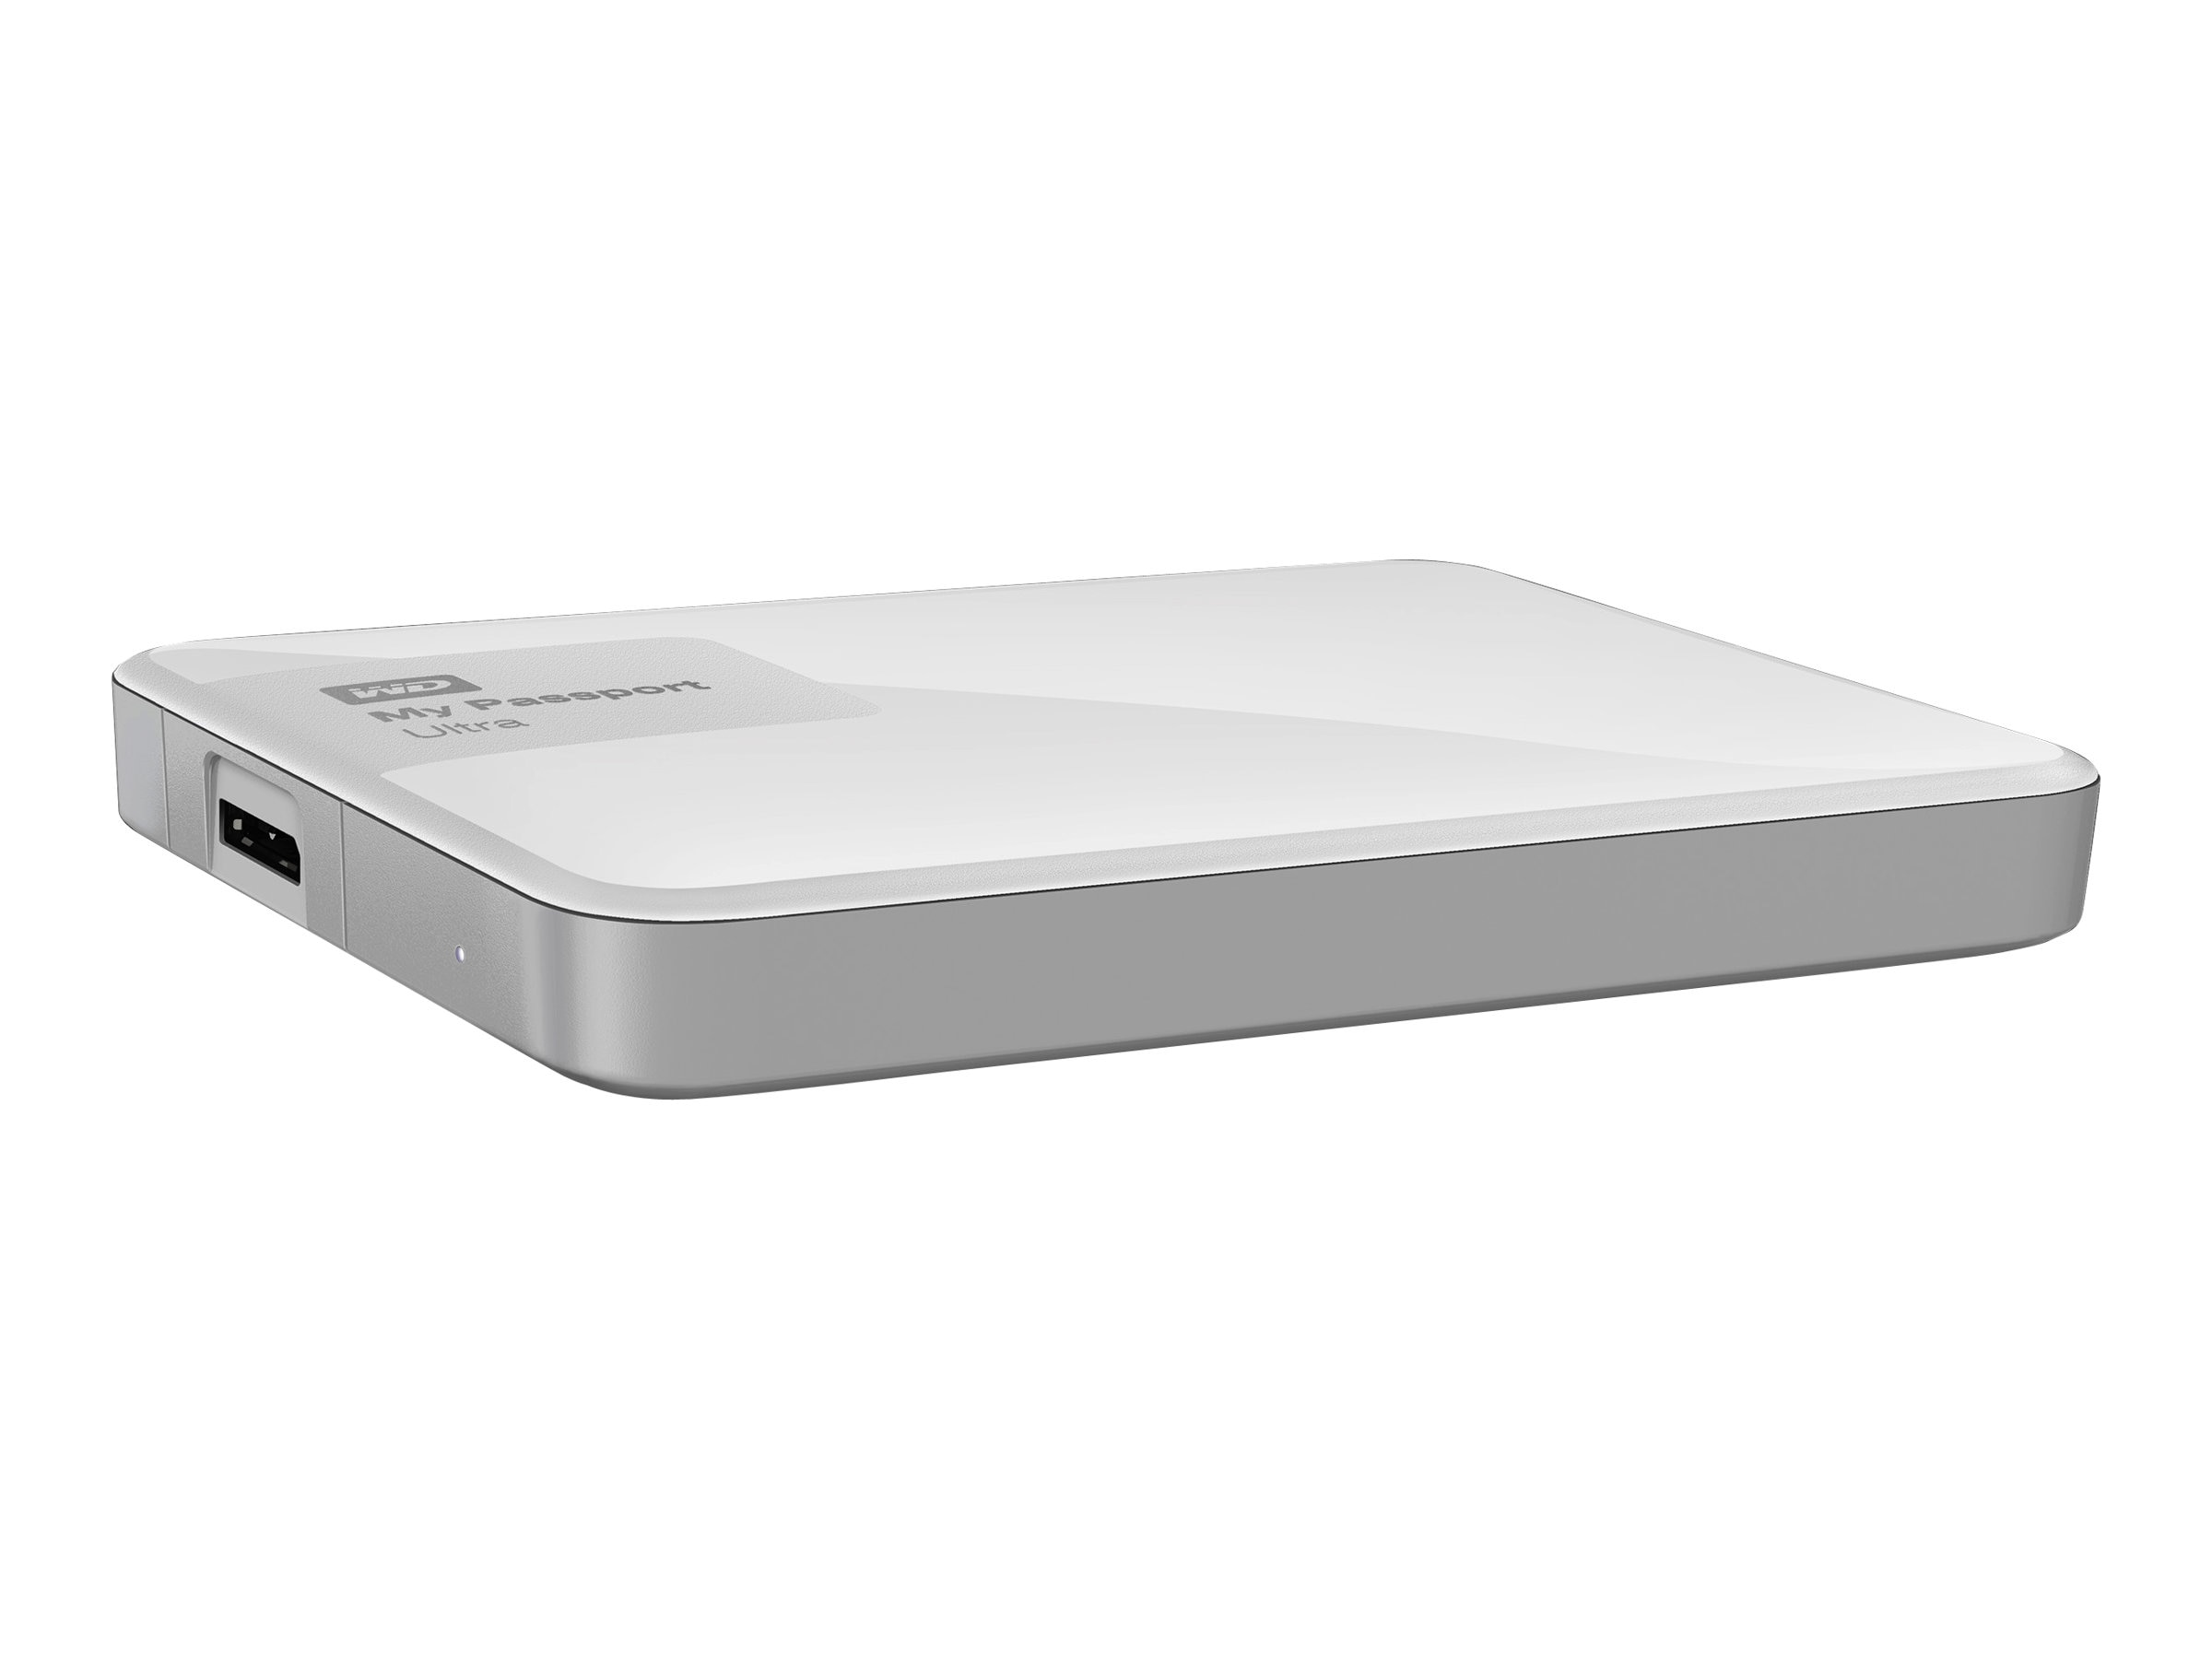 WD 2TB My Passport Ultra Portable Hard Drive - White, WDBBKD0020BWT-NESN